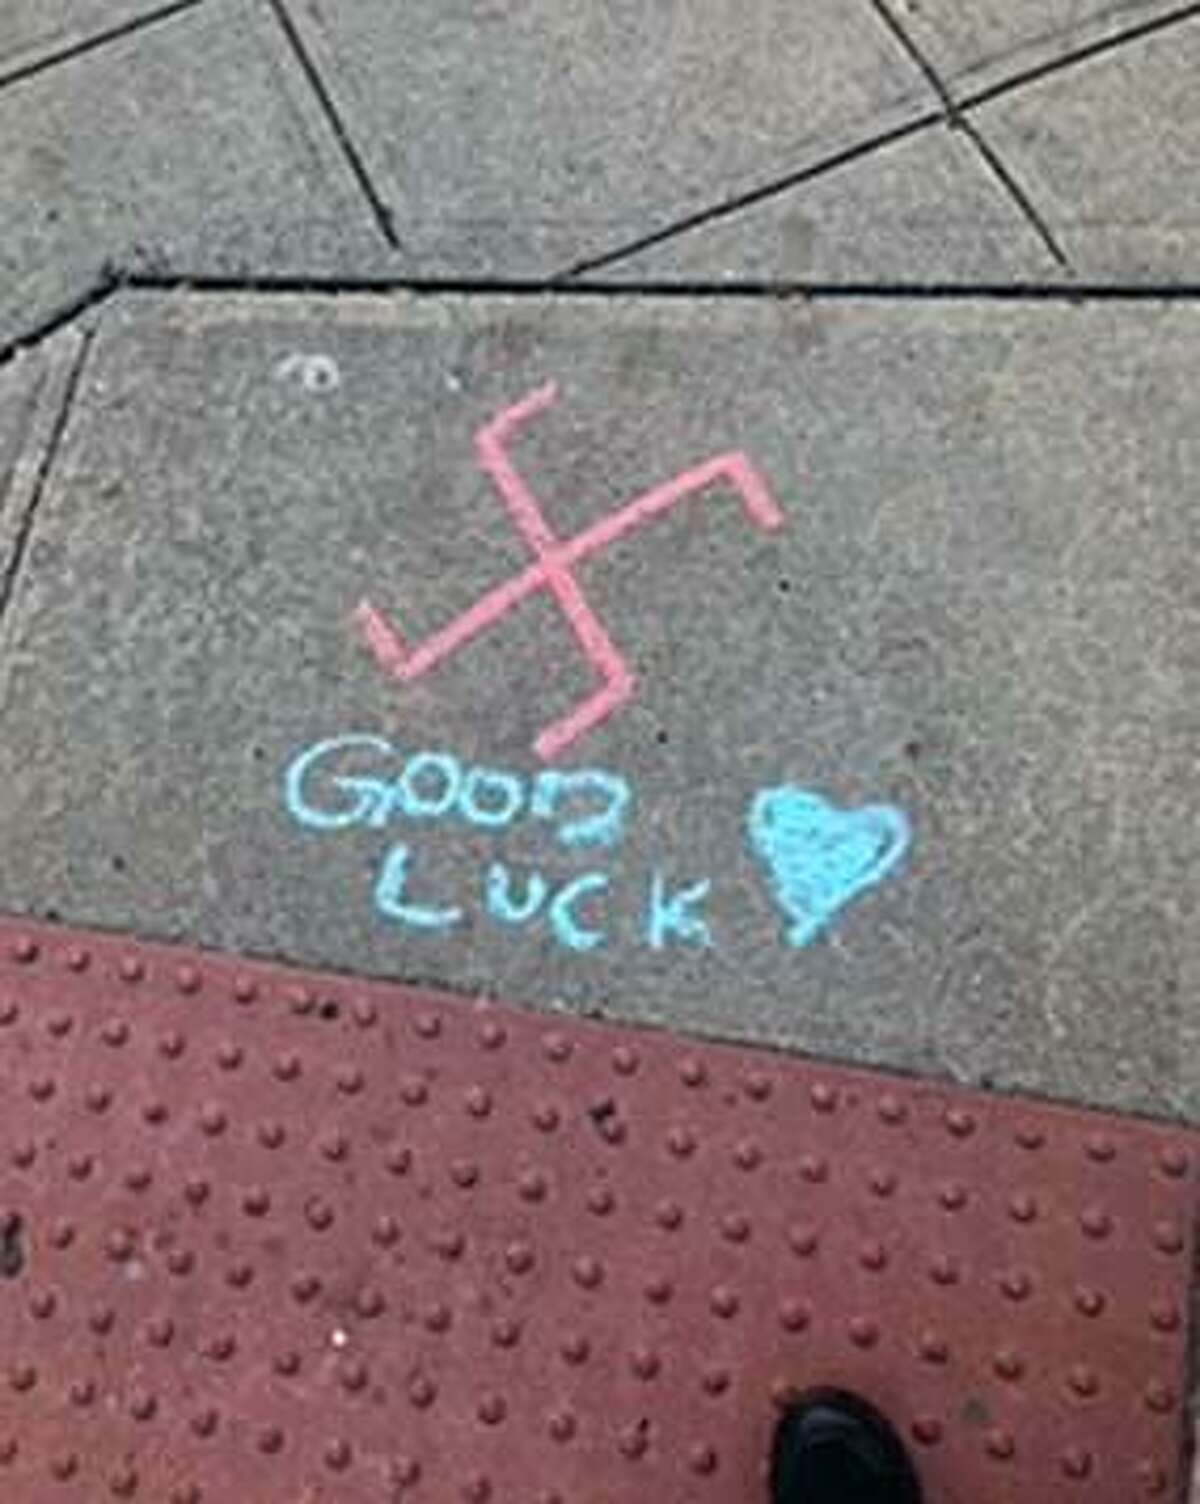 Stamford, Conn., police said swastikas were found on sidewalks in downtown on Nov. 8, 2018.